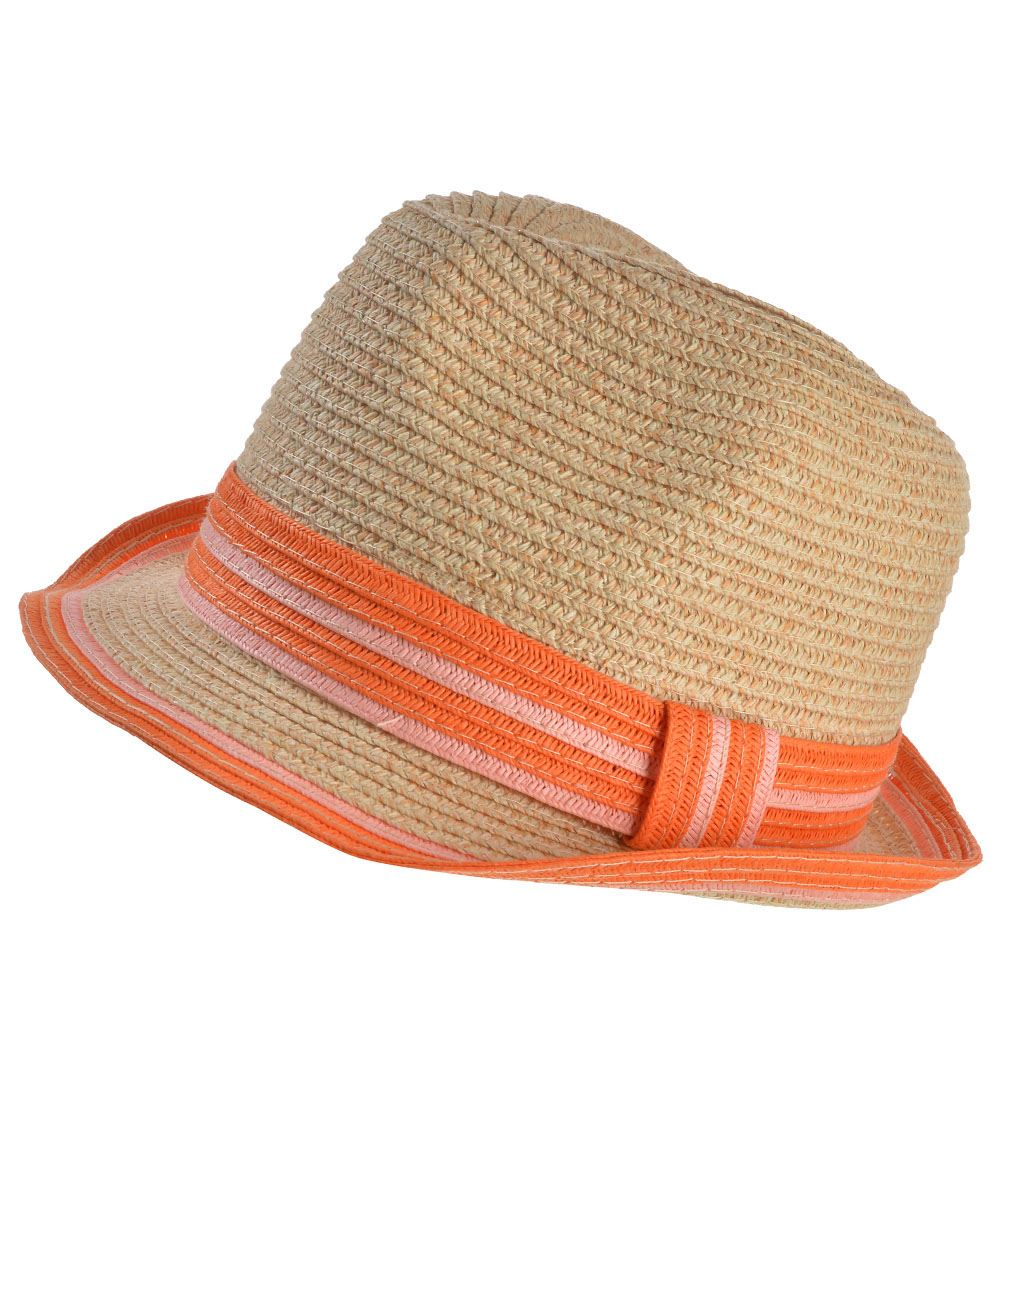 Plus, our fedora hats for women come from trusted brands like Belfry, Broner, Grace, New Era and Christine A. Moore. Hats in the Belfry carries both casual and formal fedoras for women. Linen, raffia and straw fedoras are popular for summertime soirees or beach days, while our wool, velour and fur felt fedoras are ideal toppers for winter.